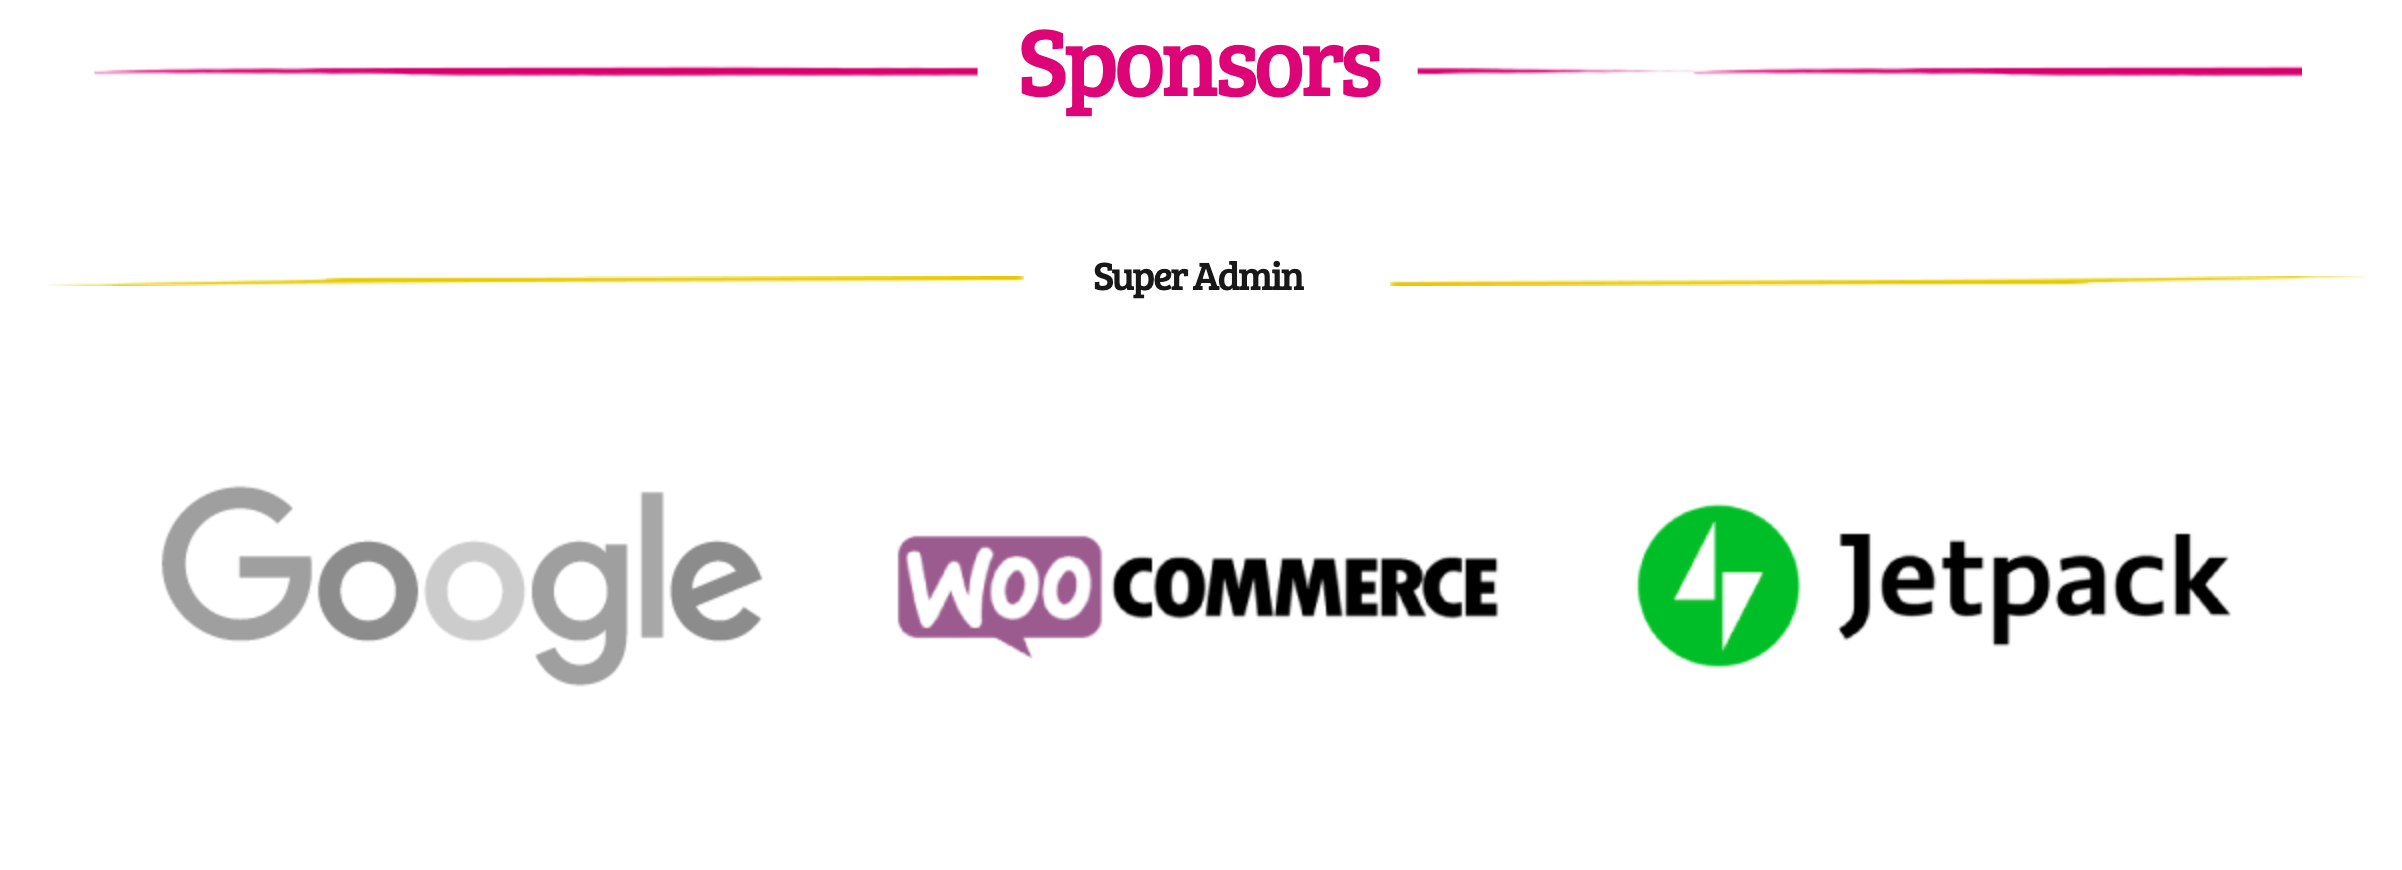 The Sponsors page for WordCamp Europe 2019.